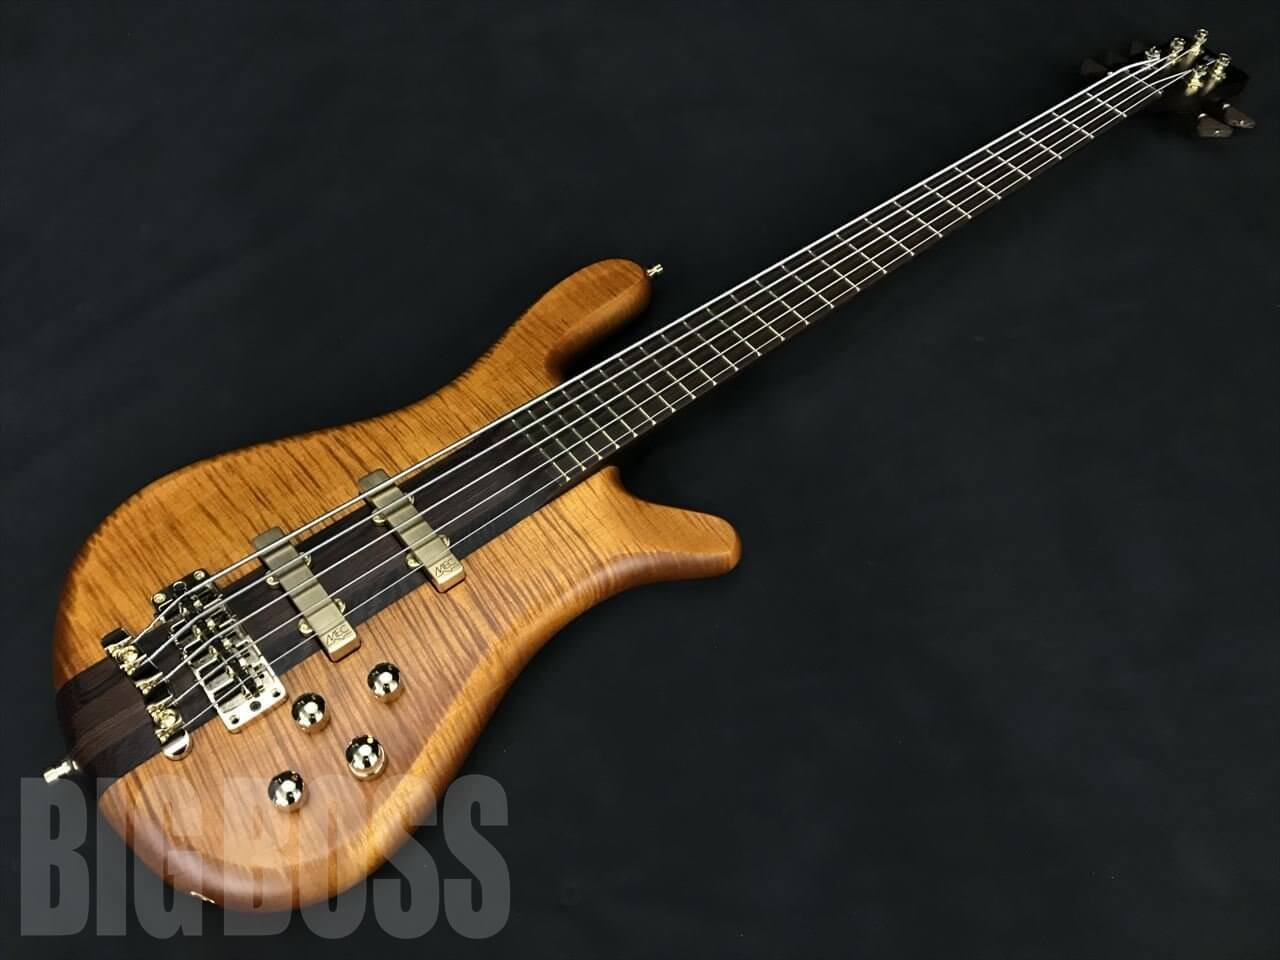 【即納可能】Warwick(ワーウィック) Custom Shop Streamer Stage I 5 (Antique Tobacco Transparent Satin)  駅前店